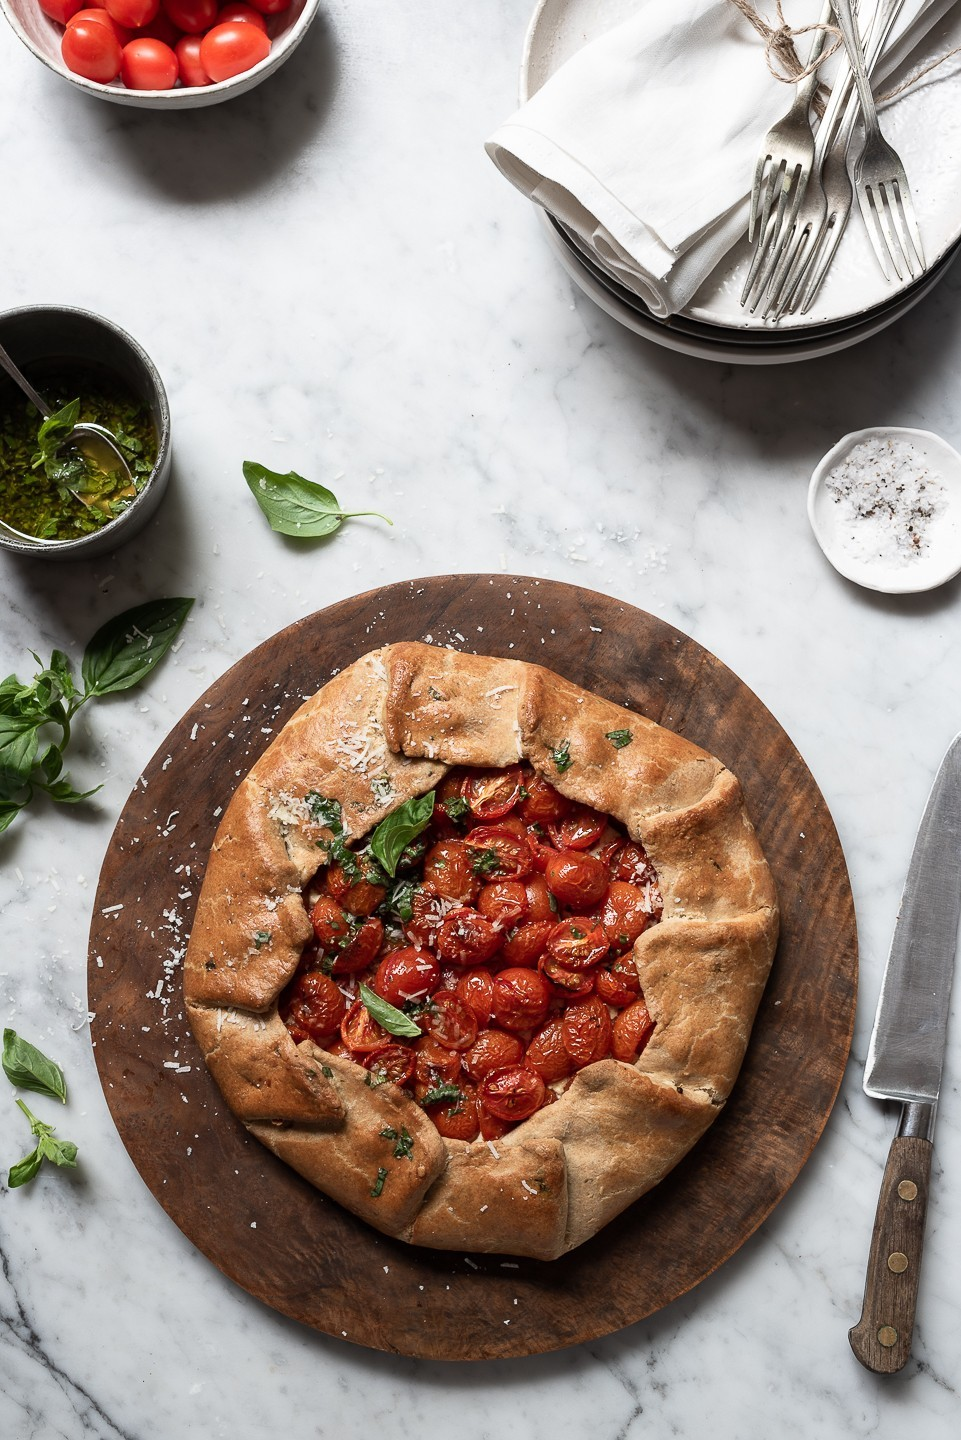 Tomato galette with ricotta & basil oil | Bibby's Kitchen @ 36 | A food blog sharing recipes, stories and travel